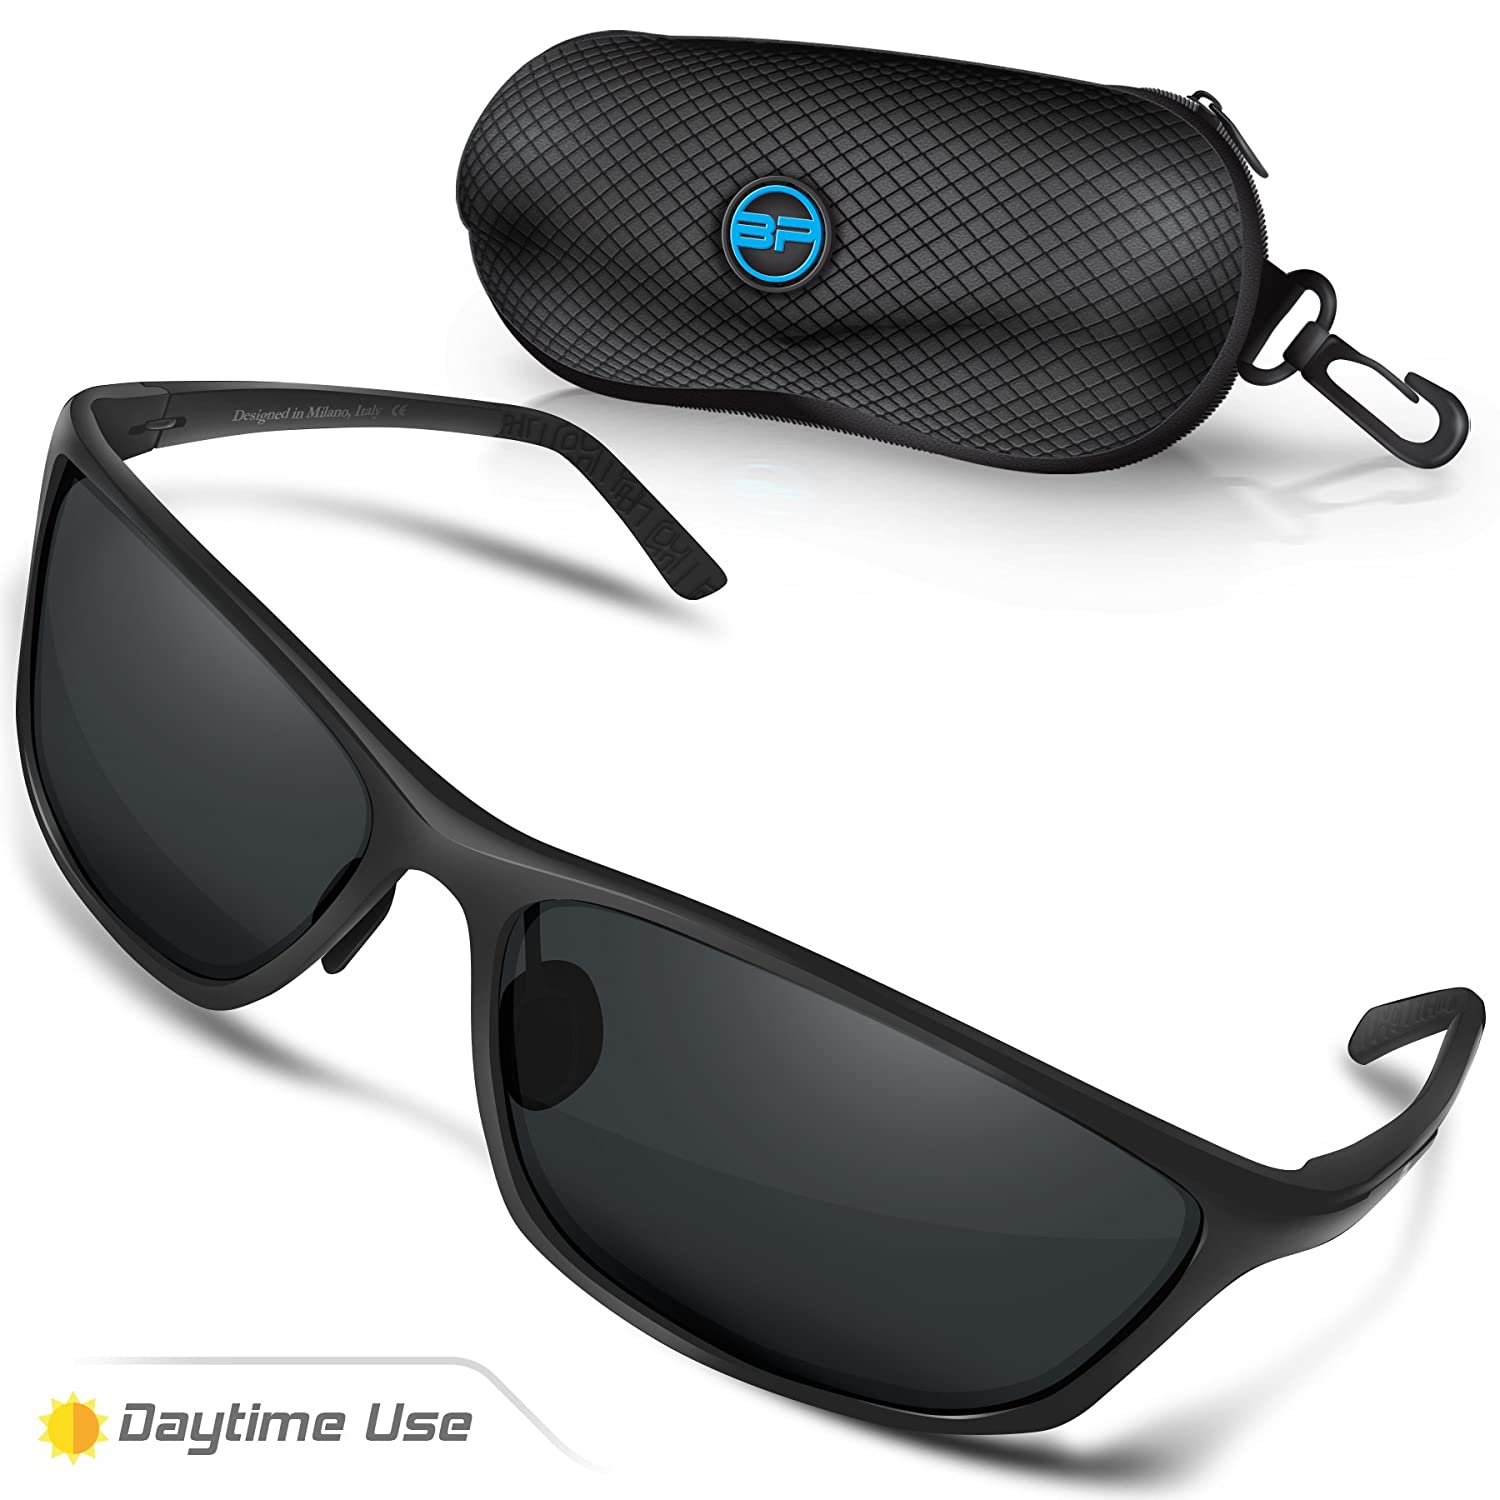 13a07c4c0ec Amazon.com  BLUPOND Polarized Driving Sunglasses for Men Women - TAC HD Vision  Anti Glare Lens - Unbreakable Metal Frame - Rally  Sports   Outdoors